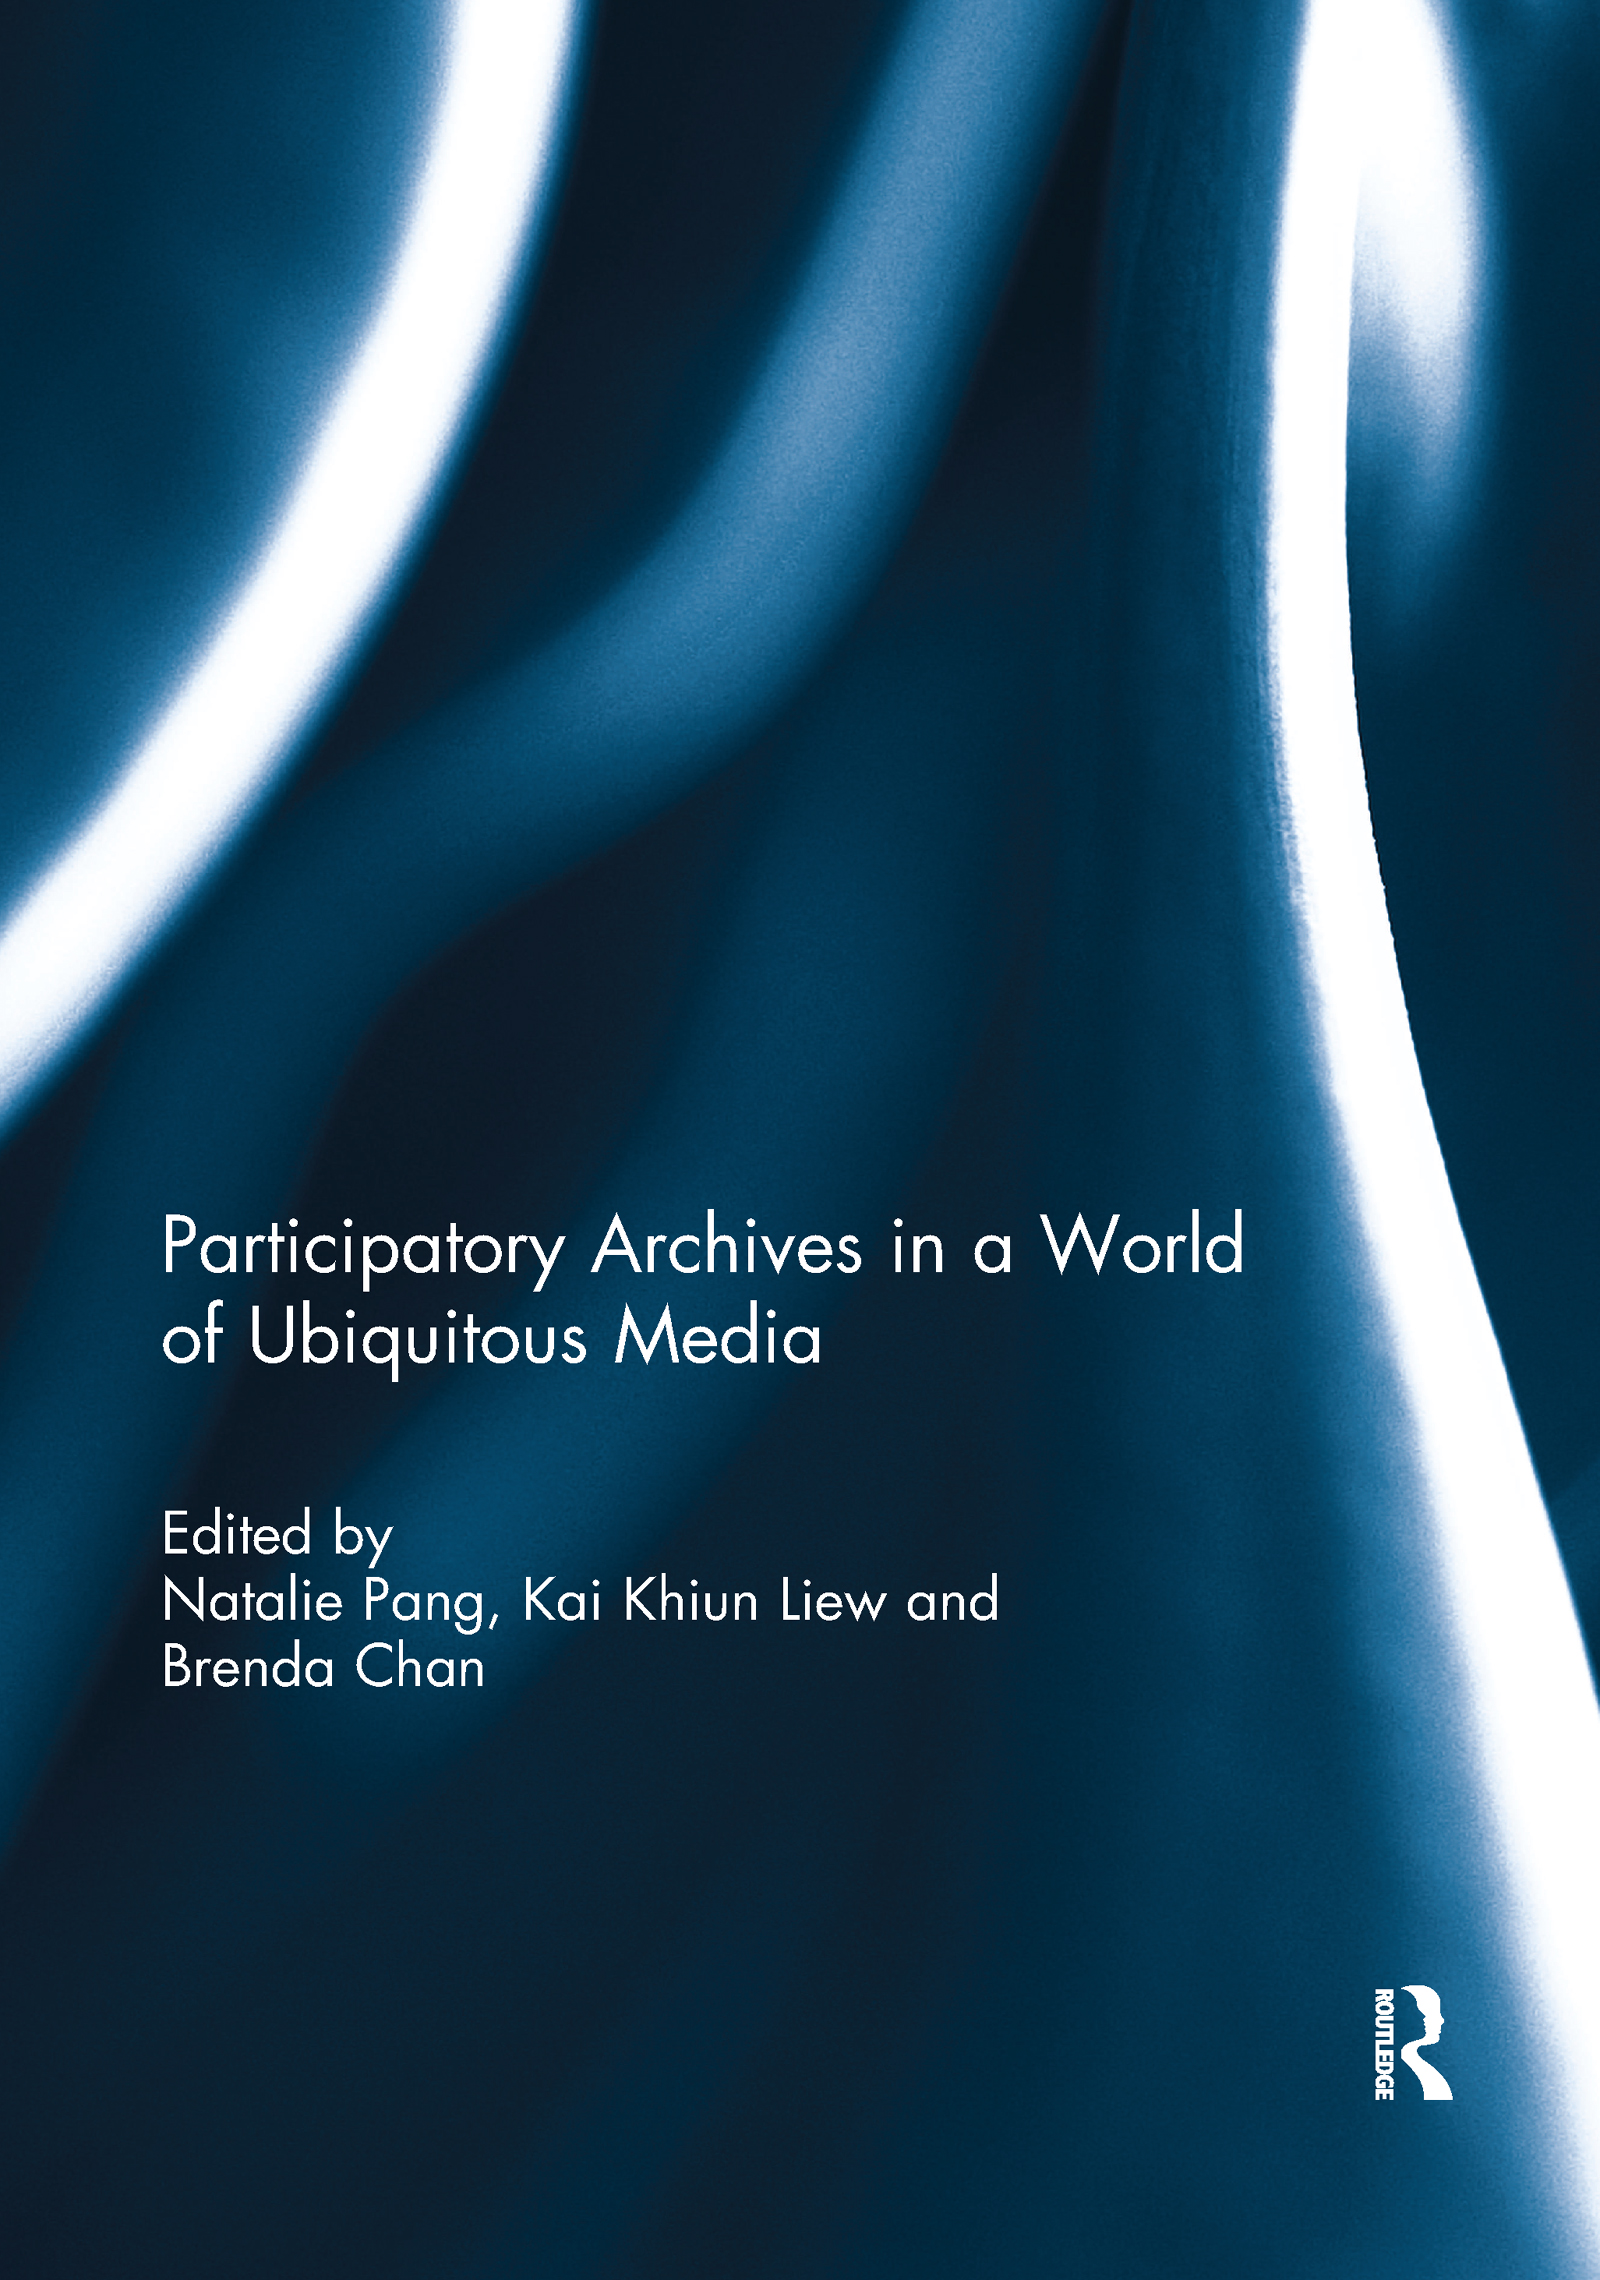 Participatory archives in a world of ubiquitous media